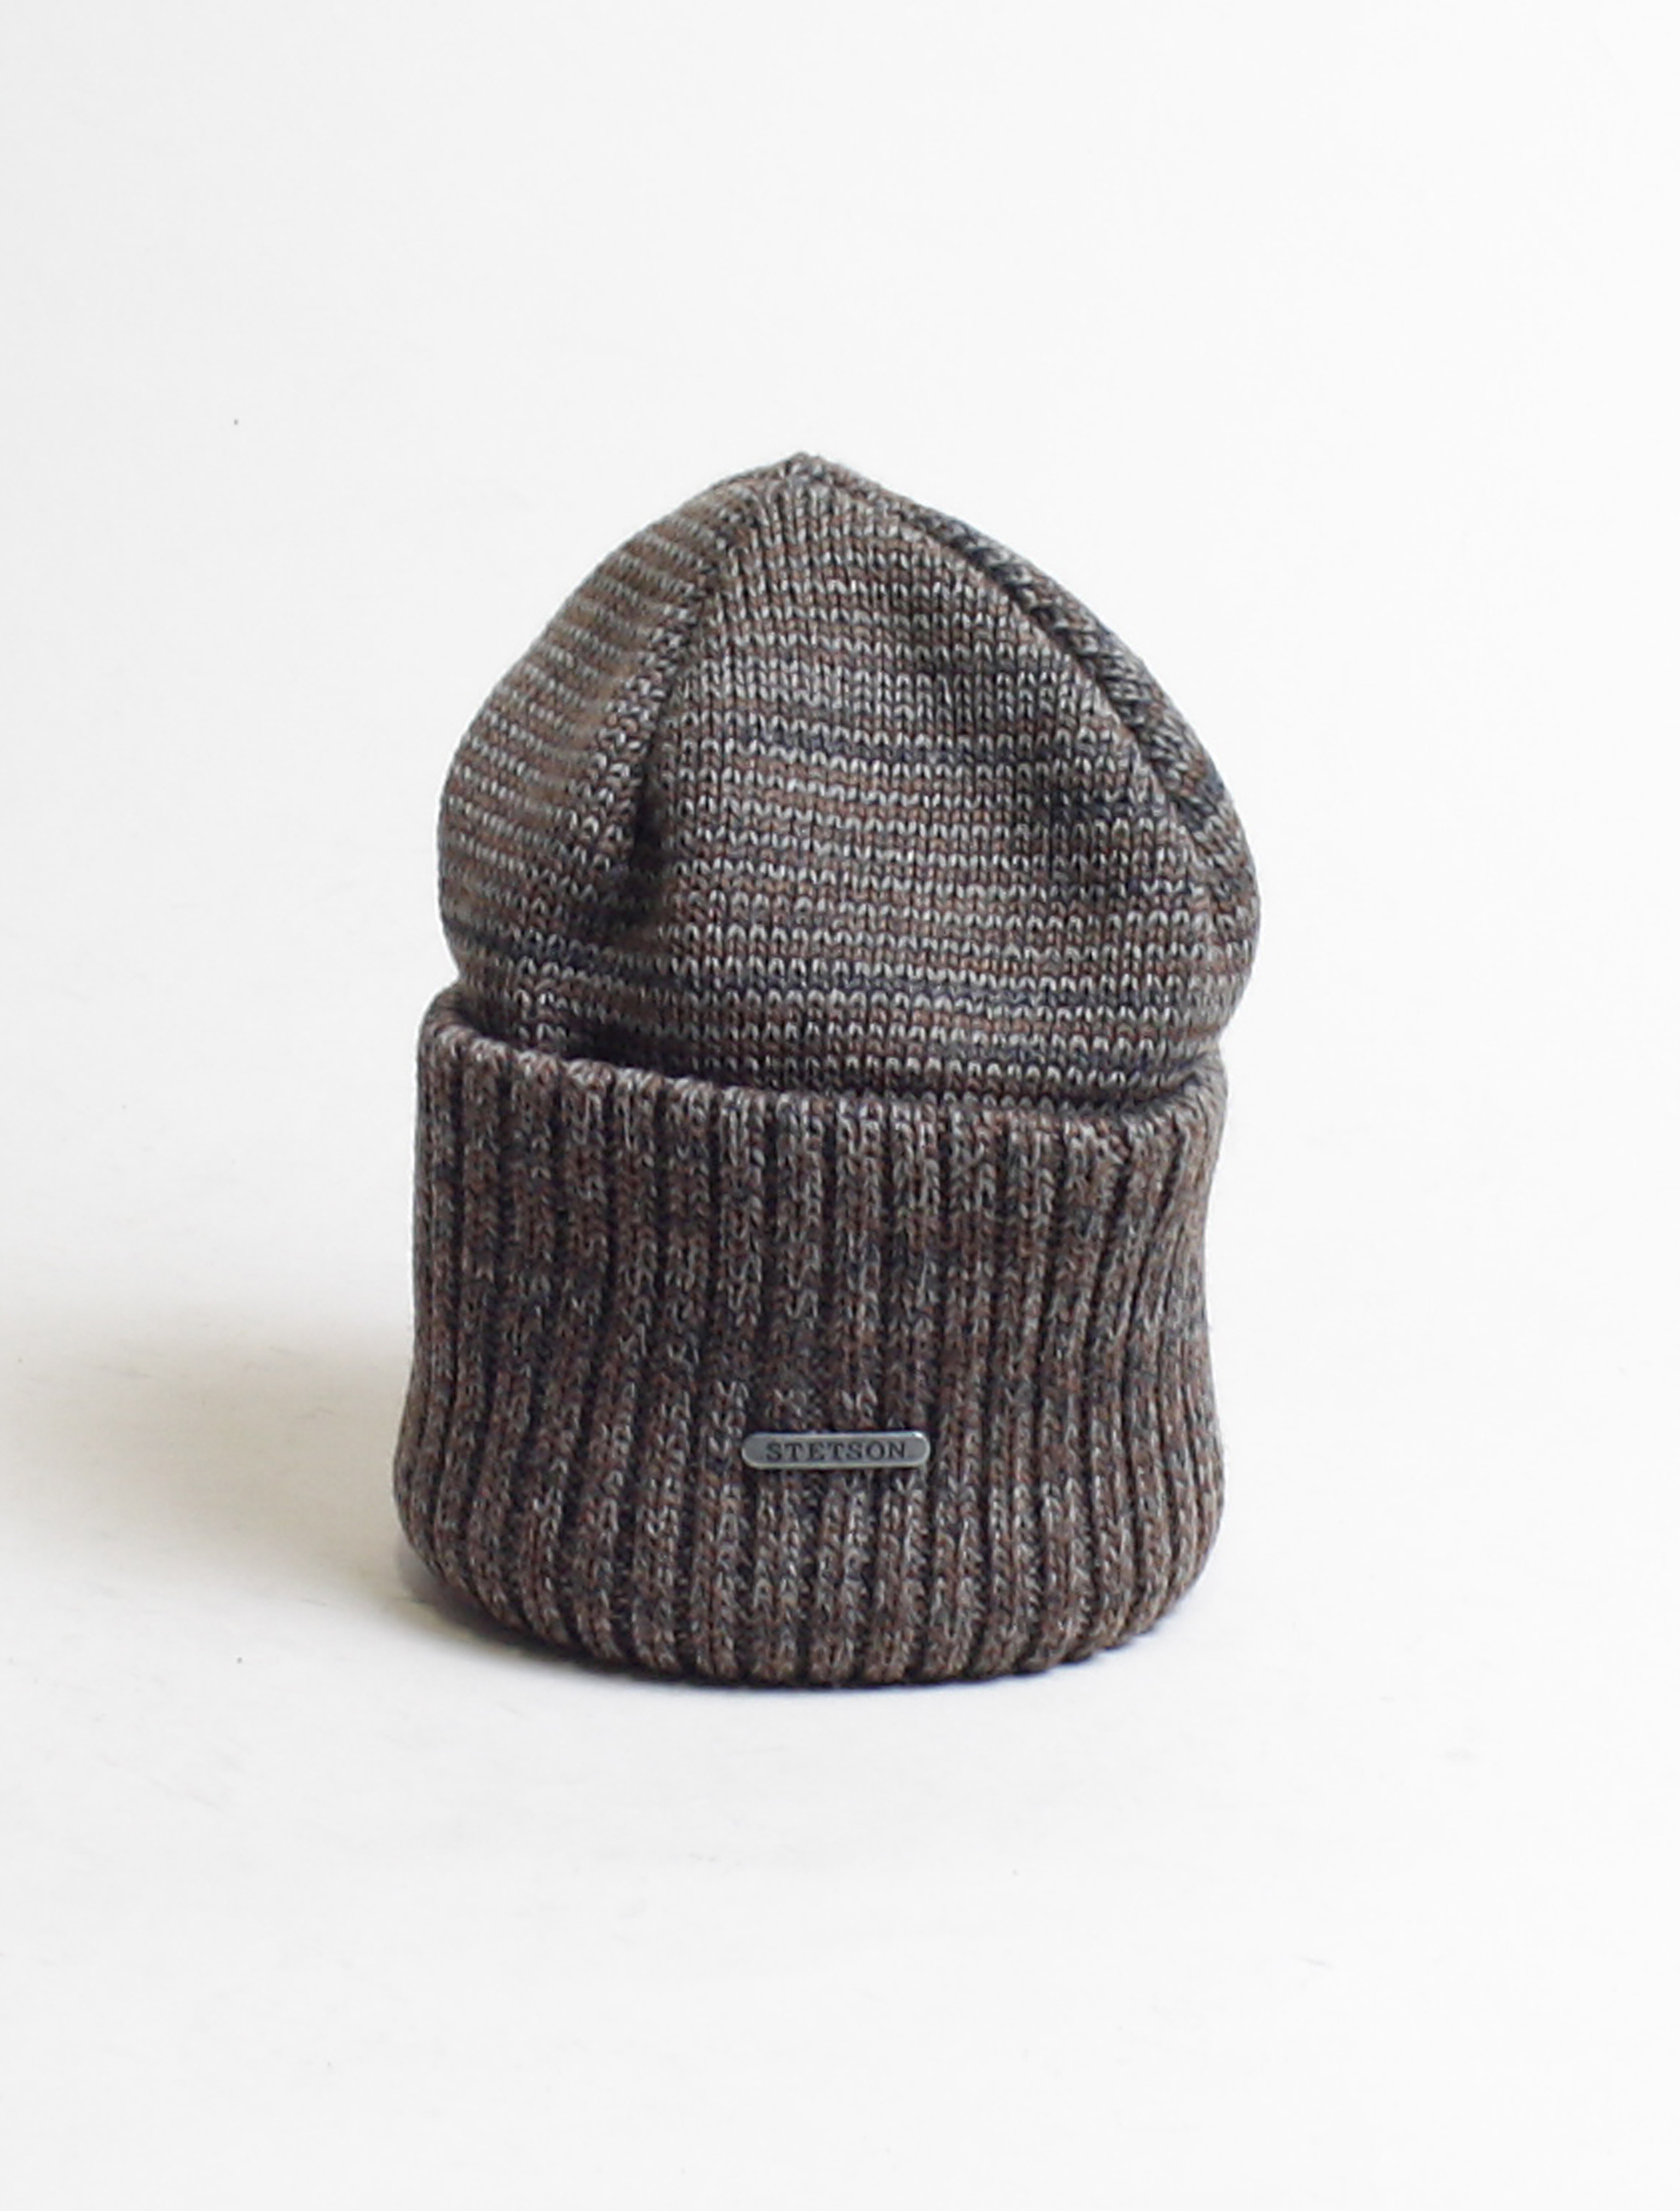 Stetson beanie Northport wool 63